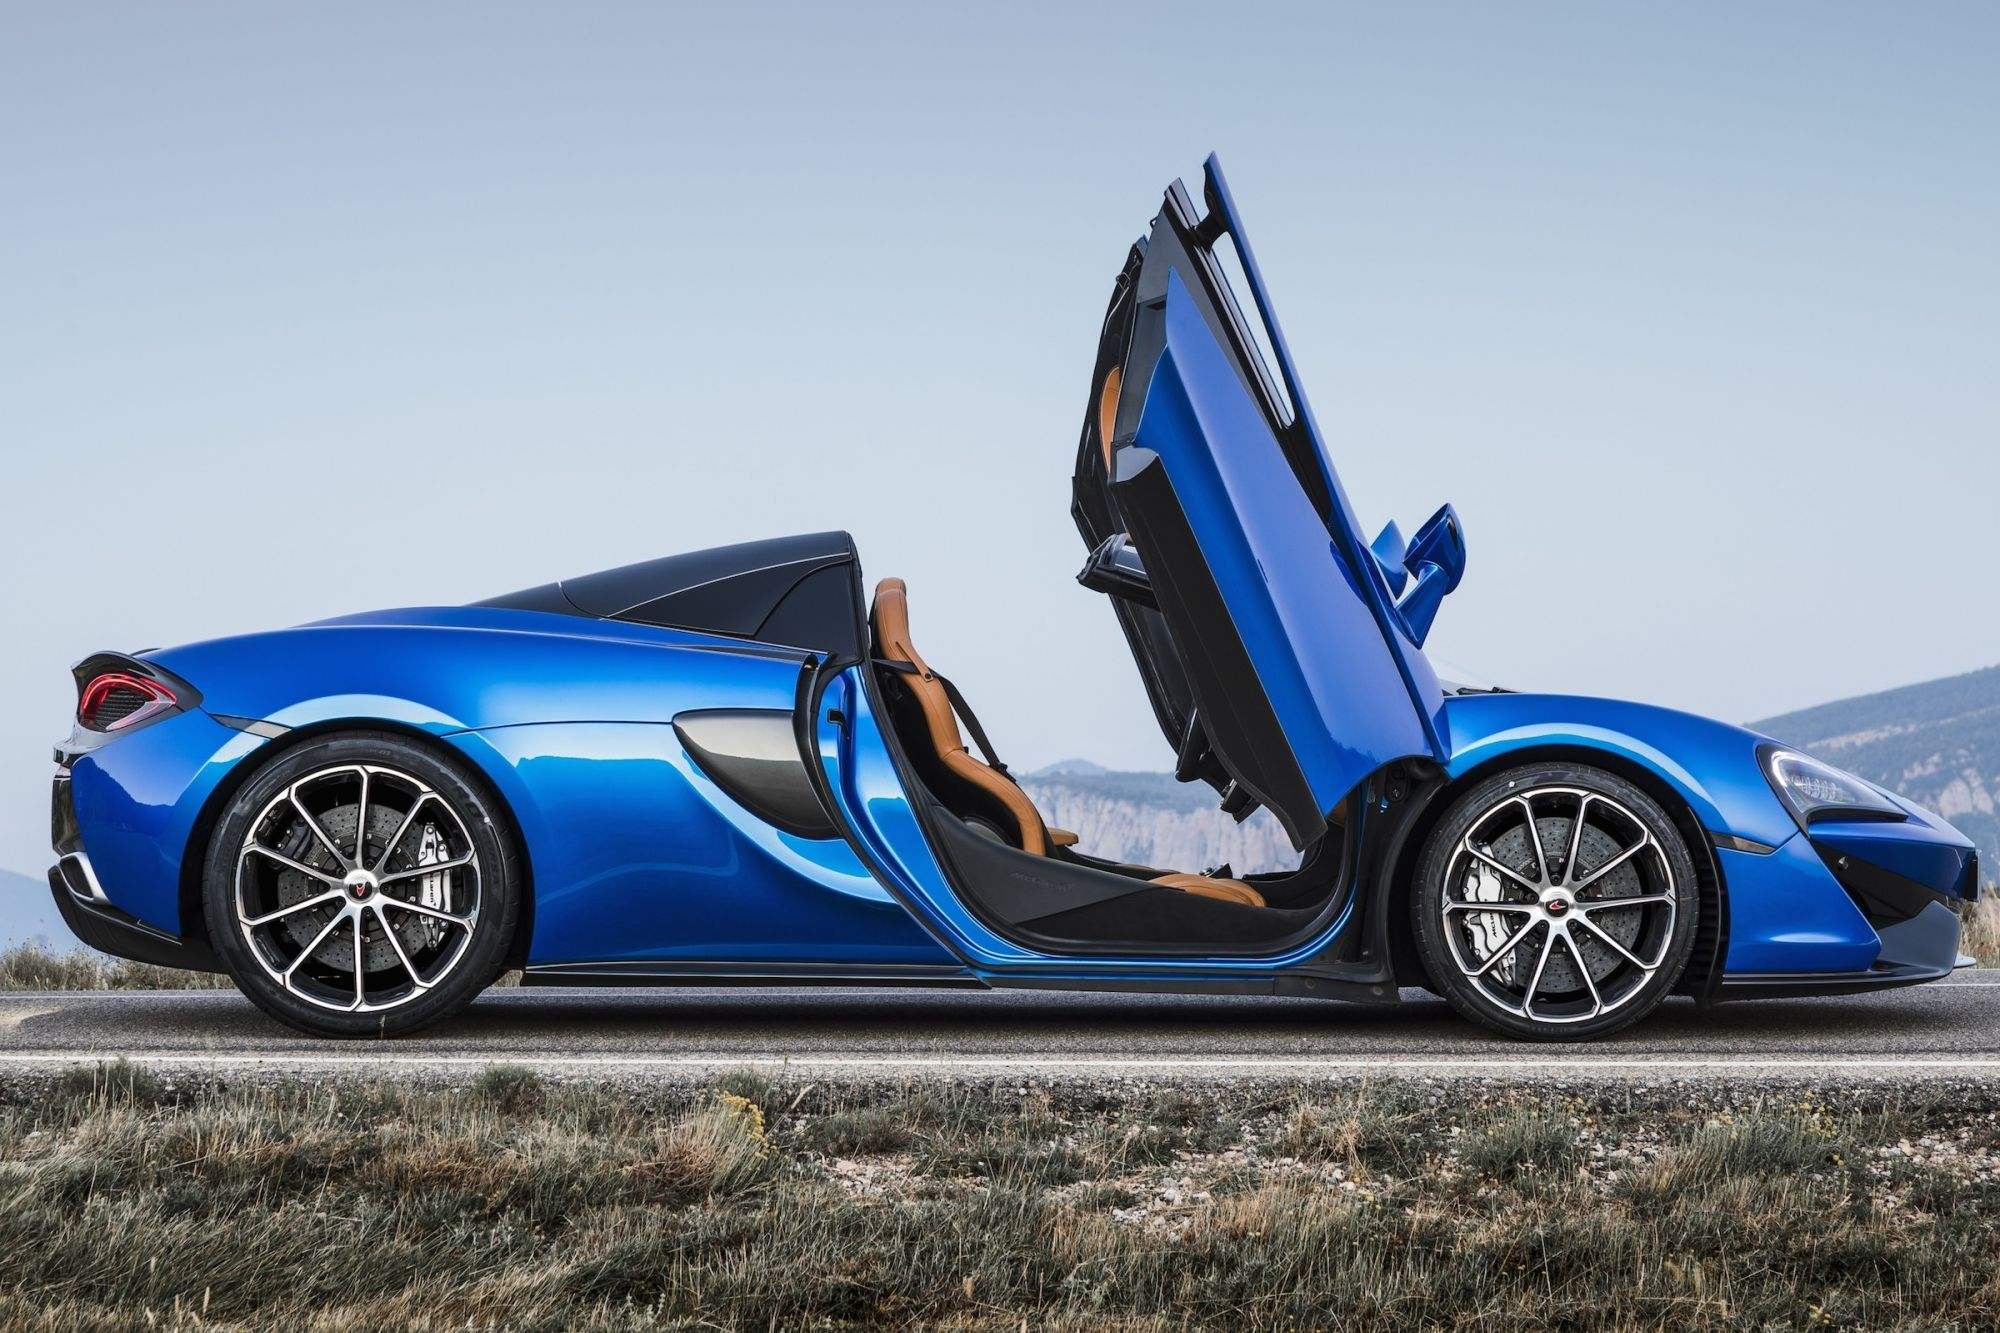 Bucking the Trend, British Supercar Manufacturer McLaren Will Not Build an SUV